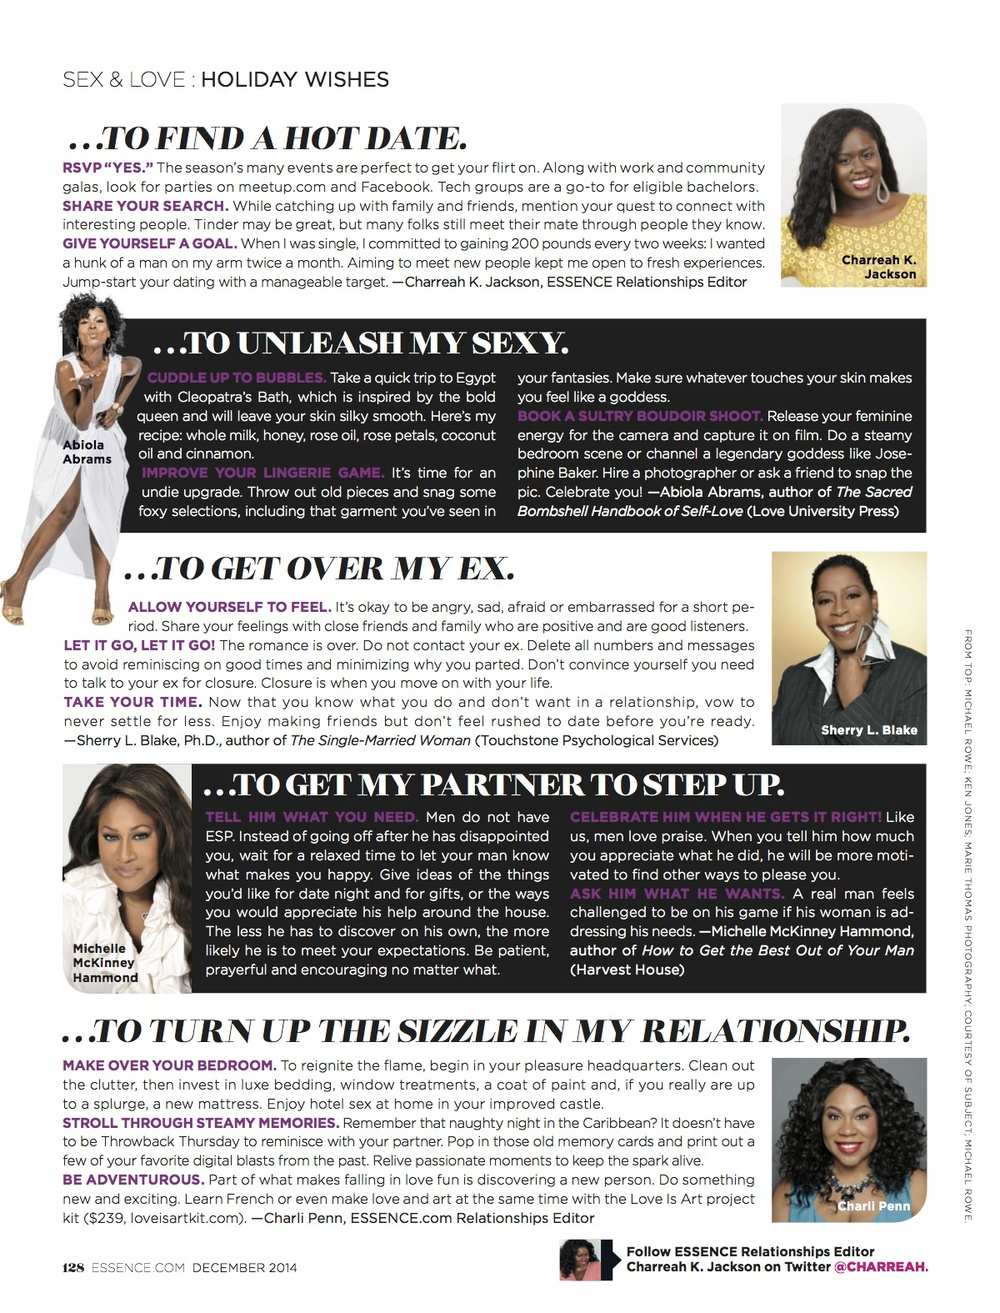 How To Turn Up The Sizzle In My Relationship, ESSENCE Dec. 2014